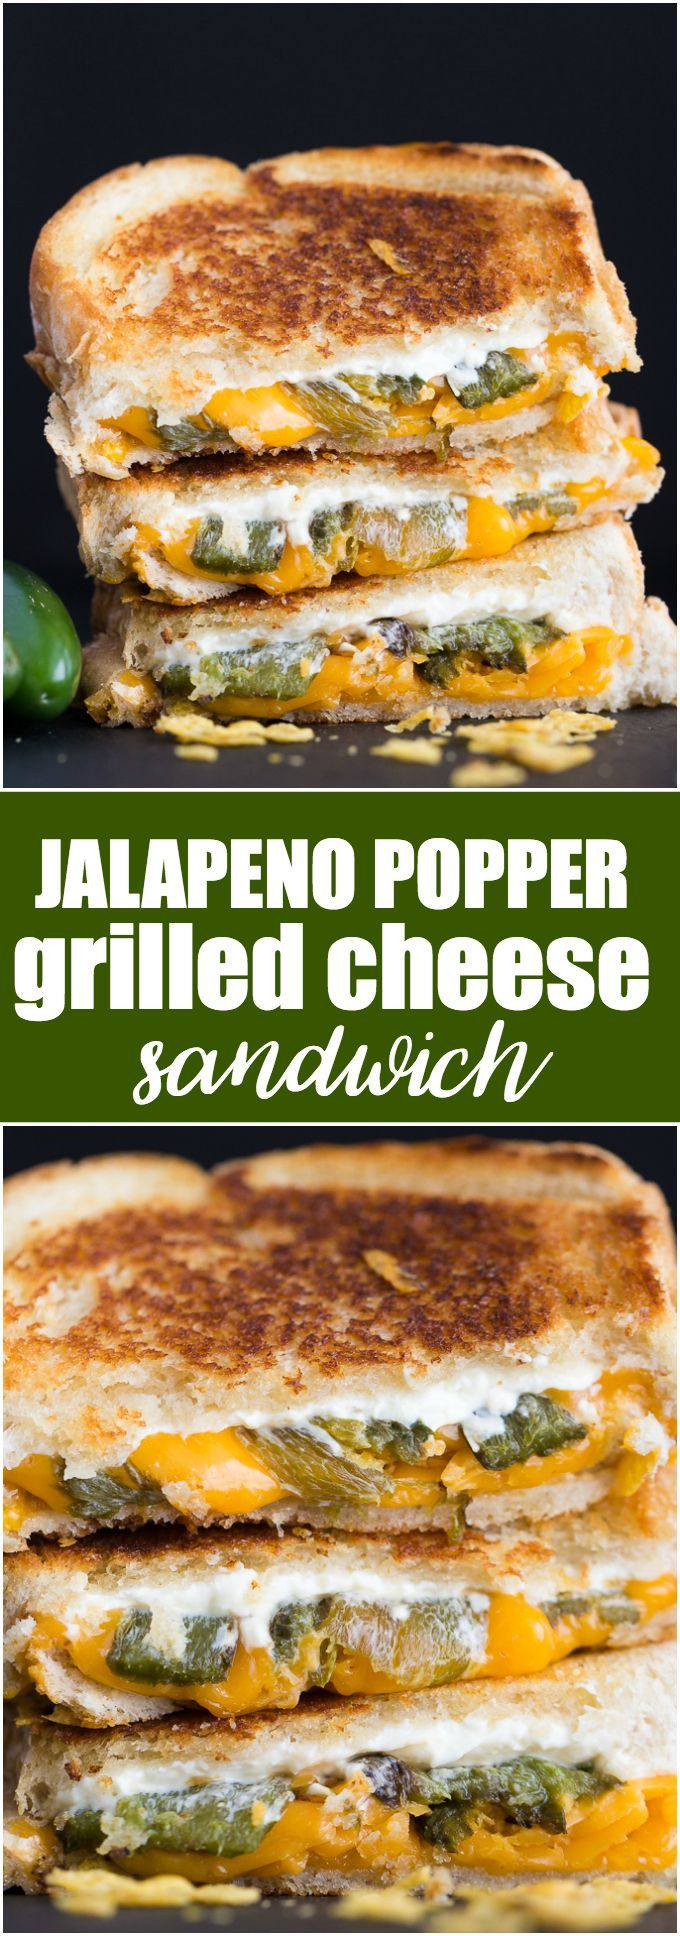 Jalapeno Popper Grilled Cheese Sandwich - Take your lunch to a whole new spicy level!